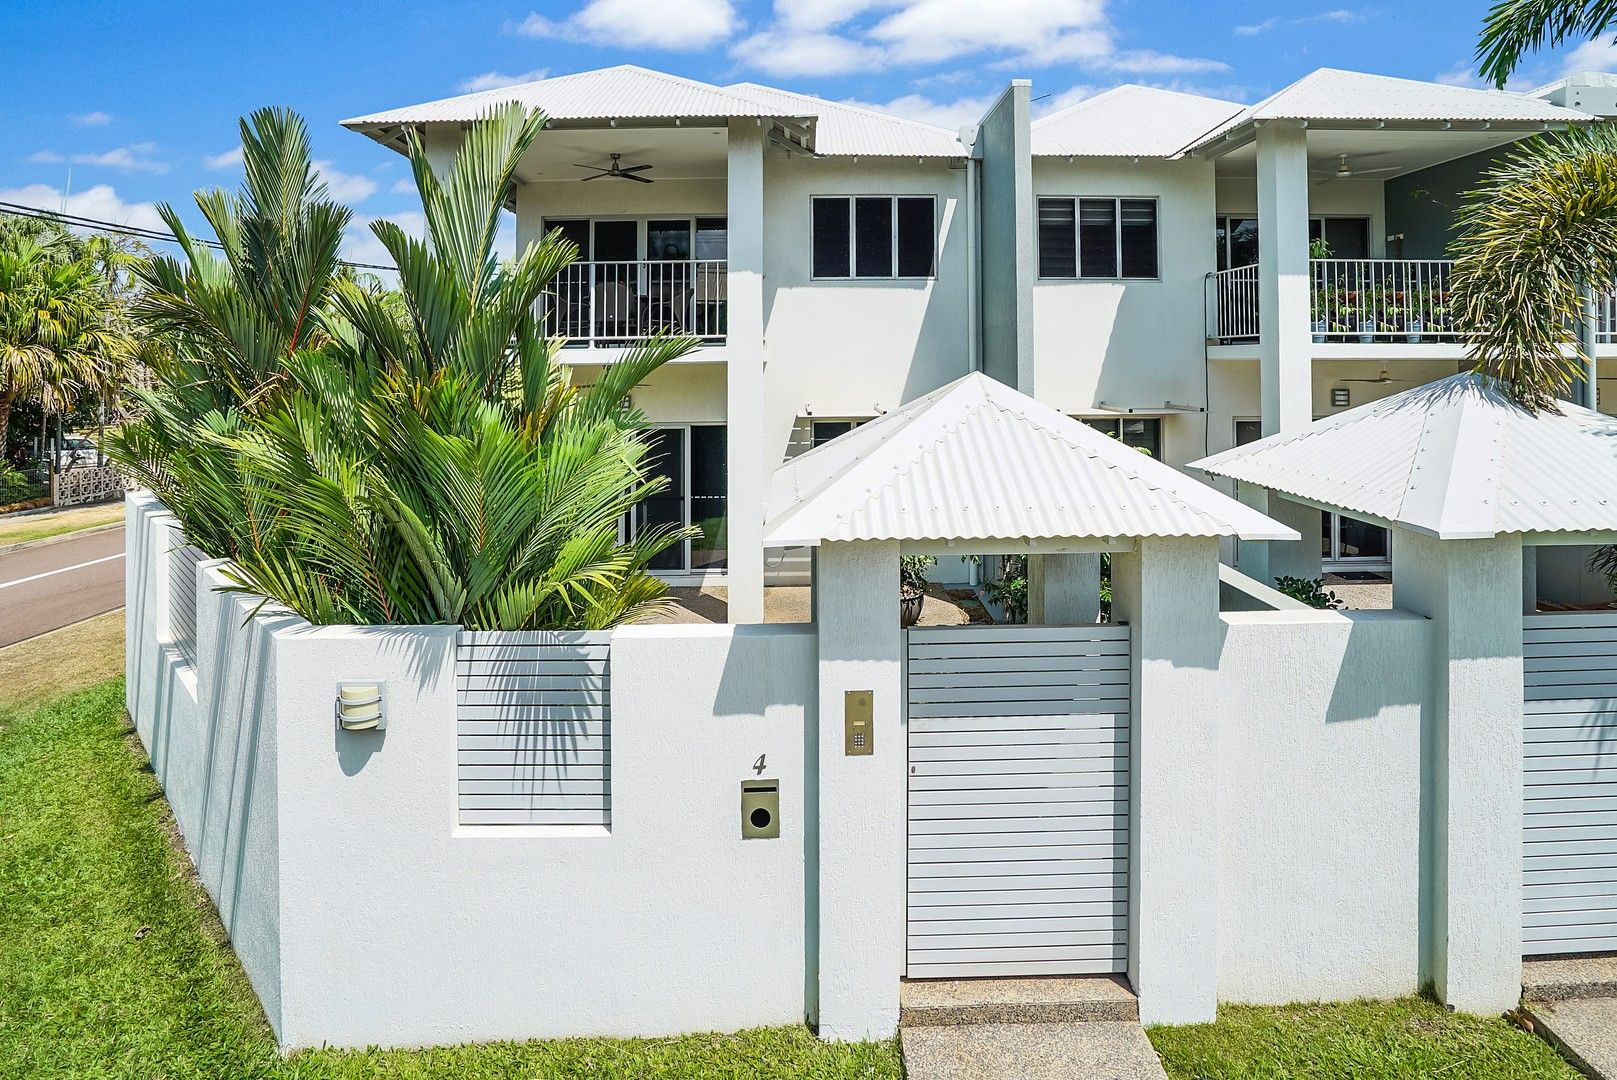 4/17 Gardens Hill Crescent, The Gardens NT 0820, Image 0